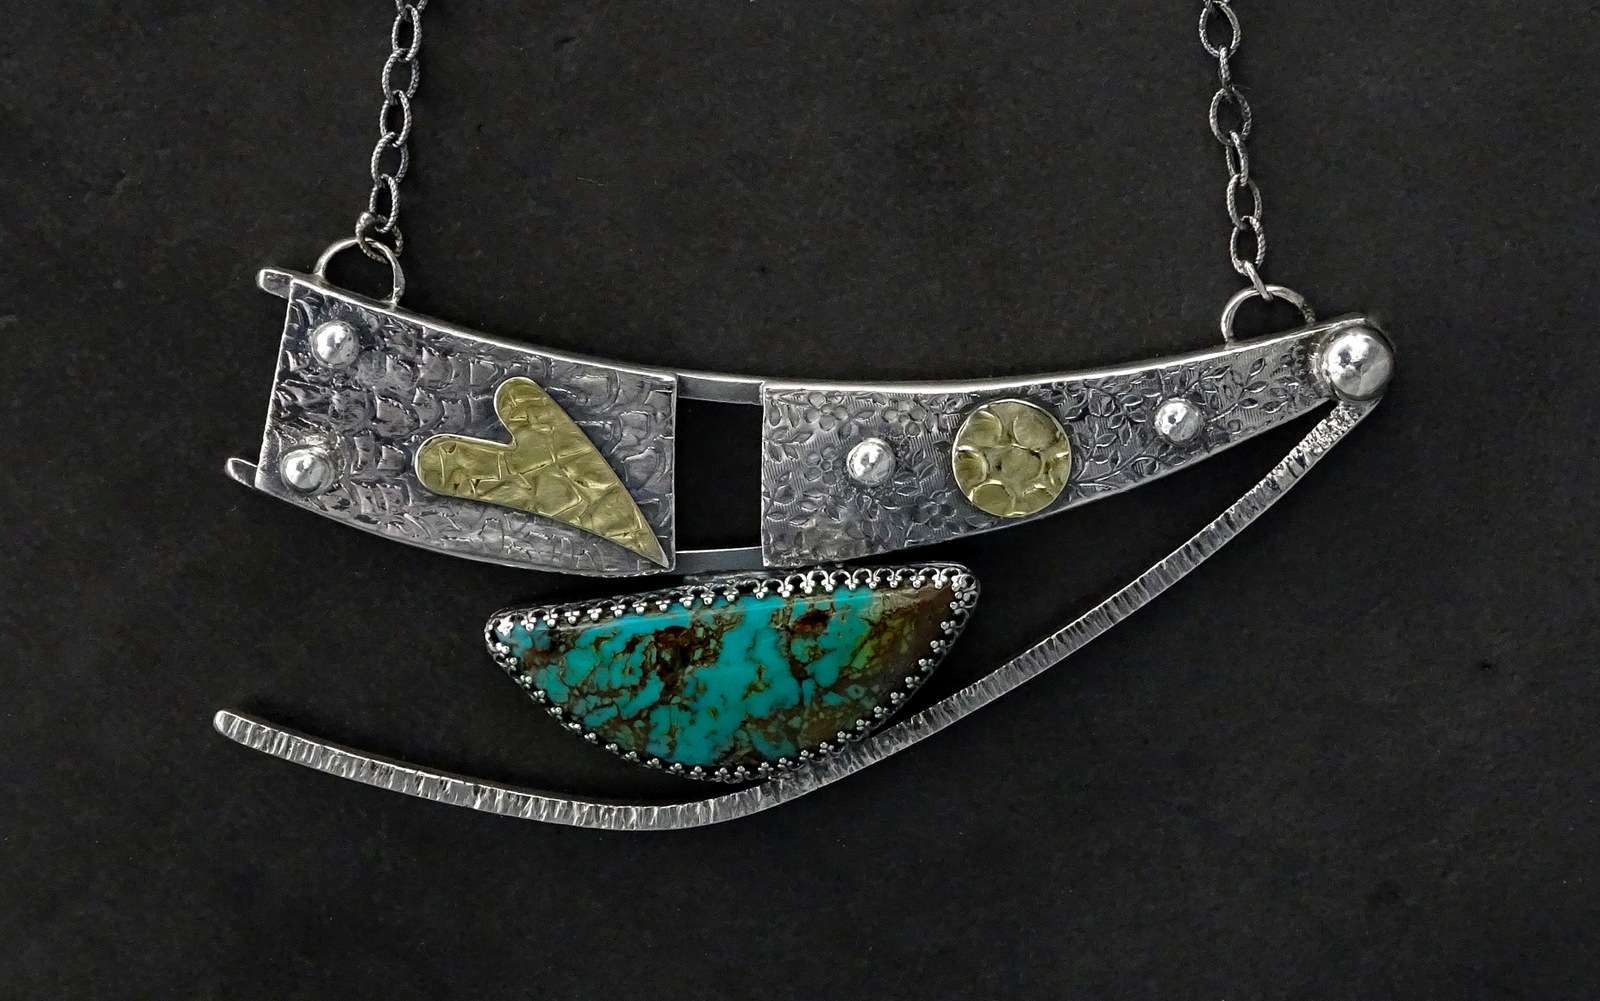 LARGE DANCING SPIRIT NECKLACE WITH TURQUOISE STONE,  Pendant - 4.5 x 2.25 inches, Chain Length - 24 inches